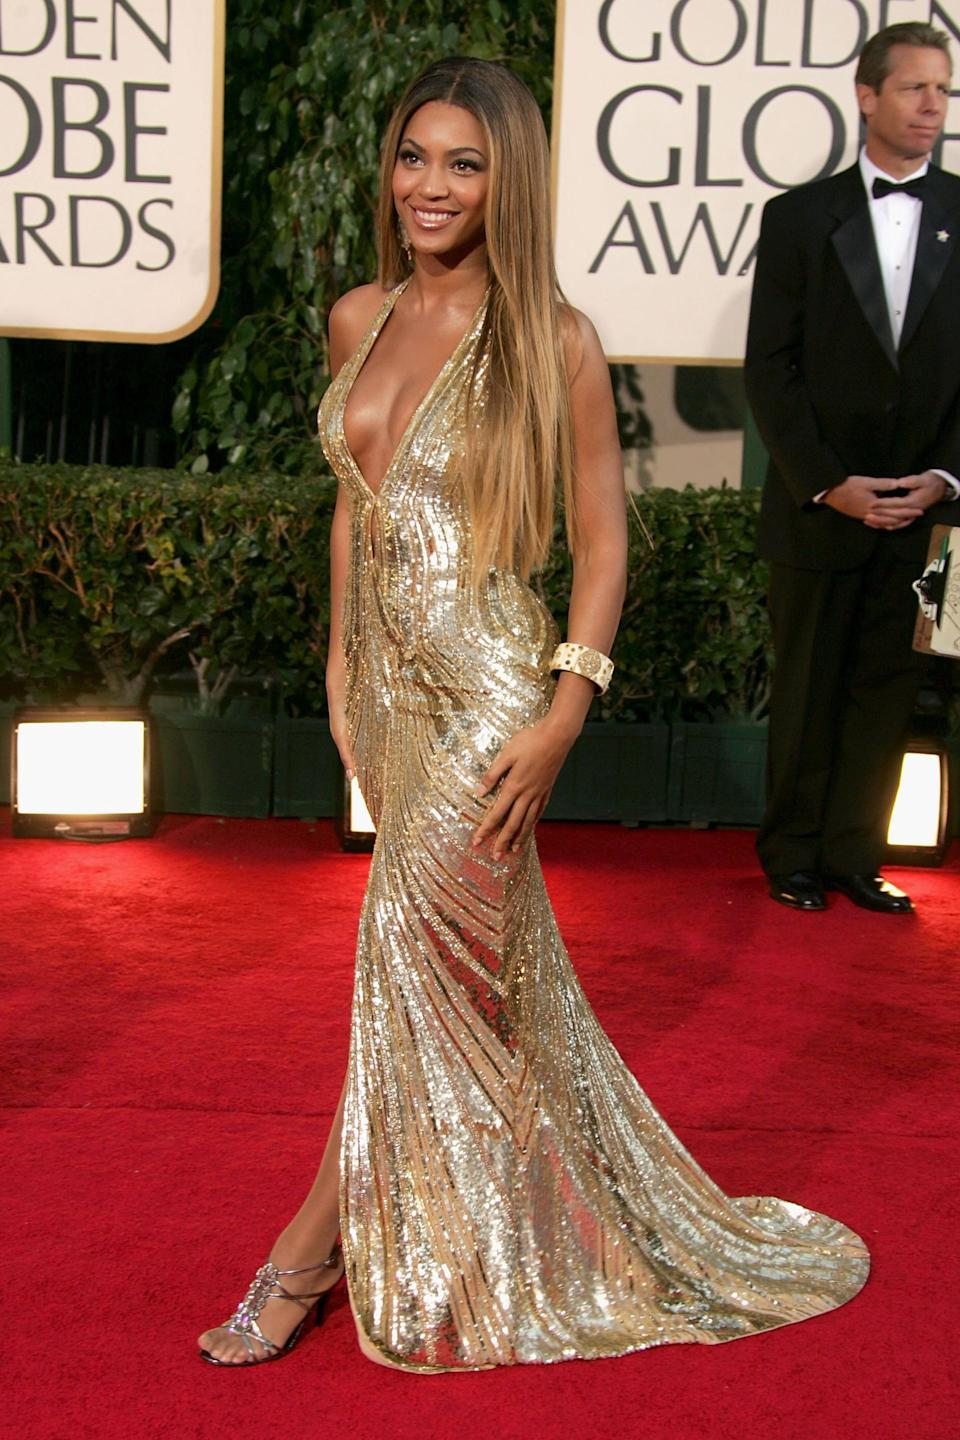 """<strong><h2>2007</h2></strong><br>Not that there's anything Queen Bey <em>doesn't</em> look stunning in, but even she outdid herself with this gold, sequined Elie Saab number.<br><br><em>Beyonce Knowles in Elie Saab.</em><span class=""""copyright"""">Photo: Frazer Harrison/Getty Images.</span>"""